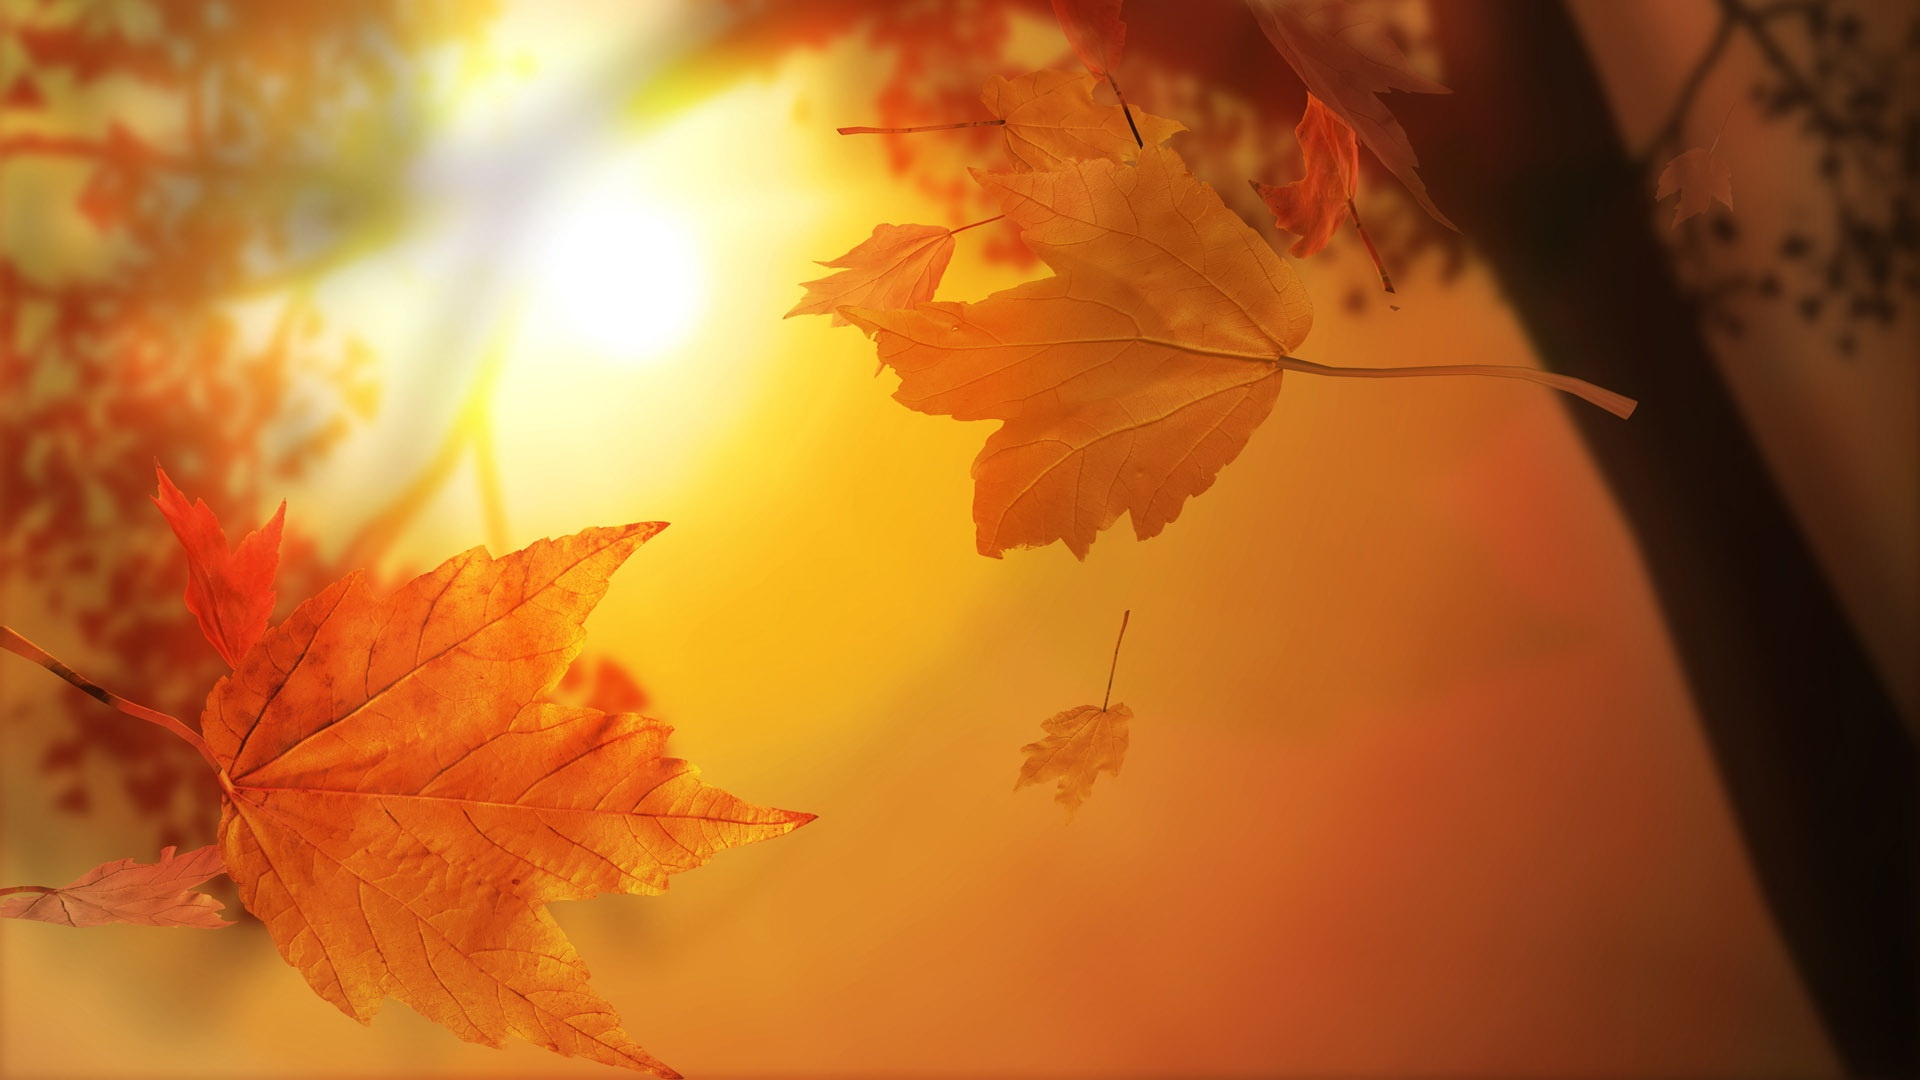 Nature Wallpaper: Cute Fall Wallpaper 1080p for Wallpaper